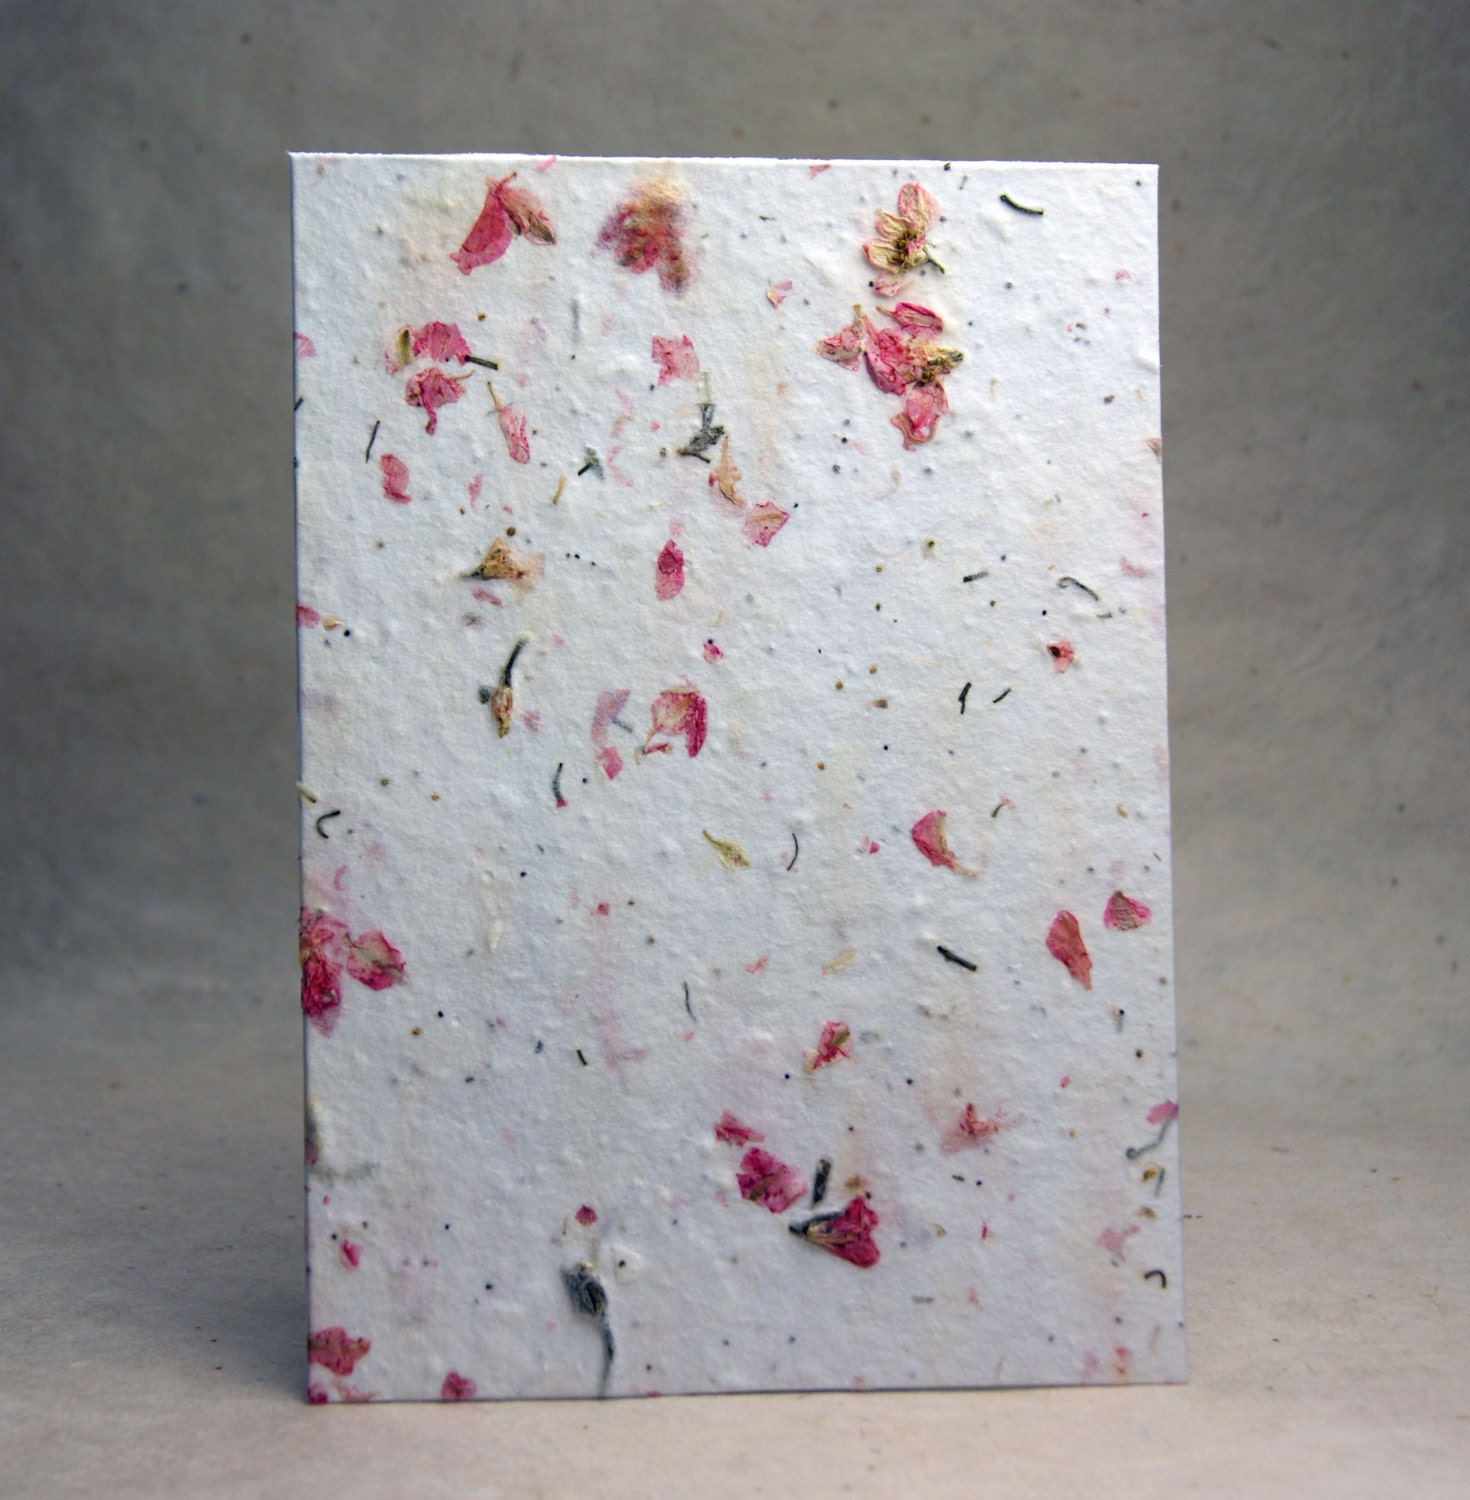 Handmade Seed Paper With Pink Larkspur Petals And Wild Flower Etsy